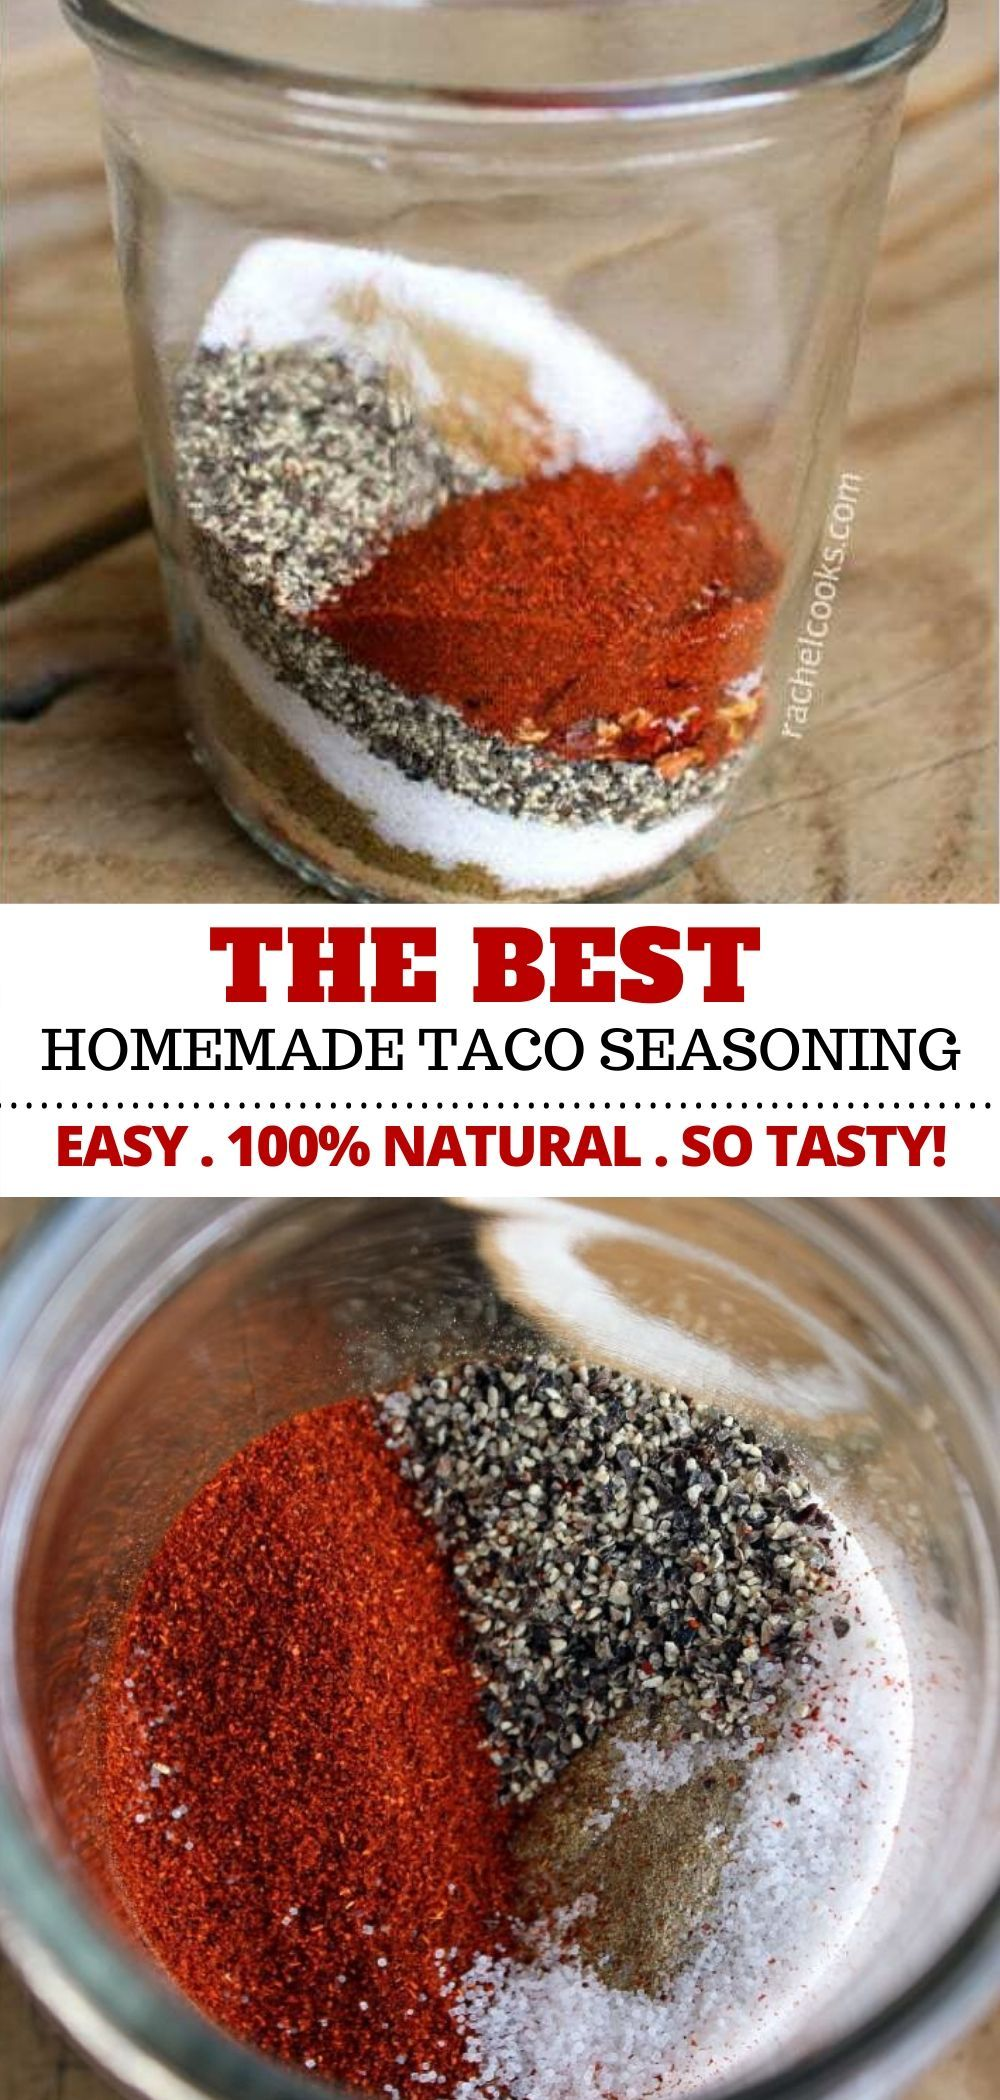 Taco Seasoning Recipe - Ditch the Packet for GOOD! - with VIDEO #homemadeseasonings